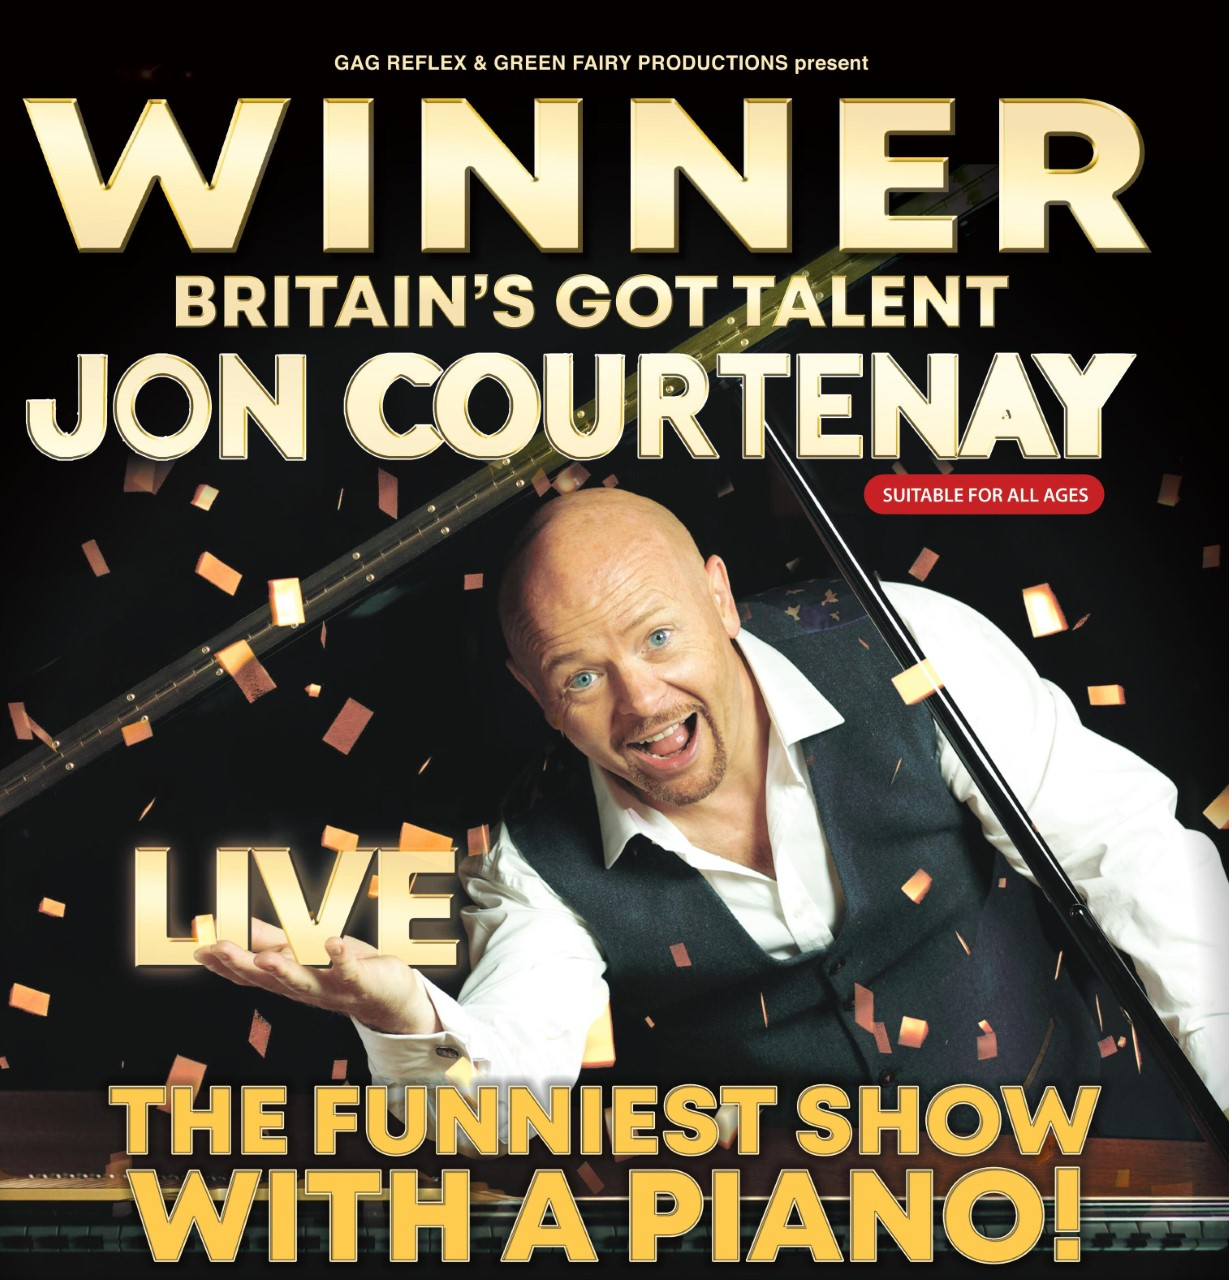 Event image for Jon Courtenay at Camberley Theatre